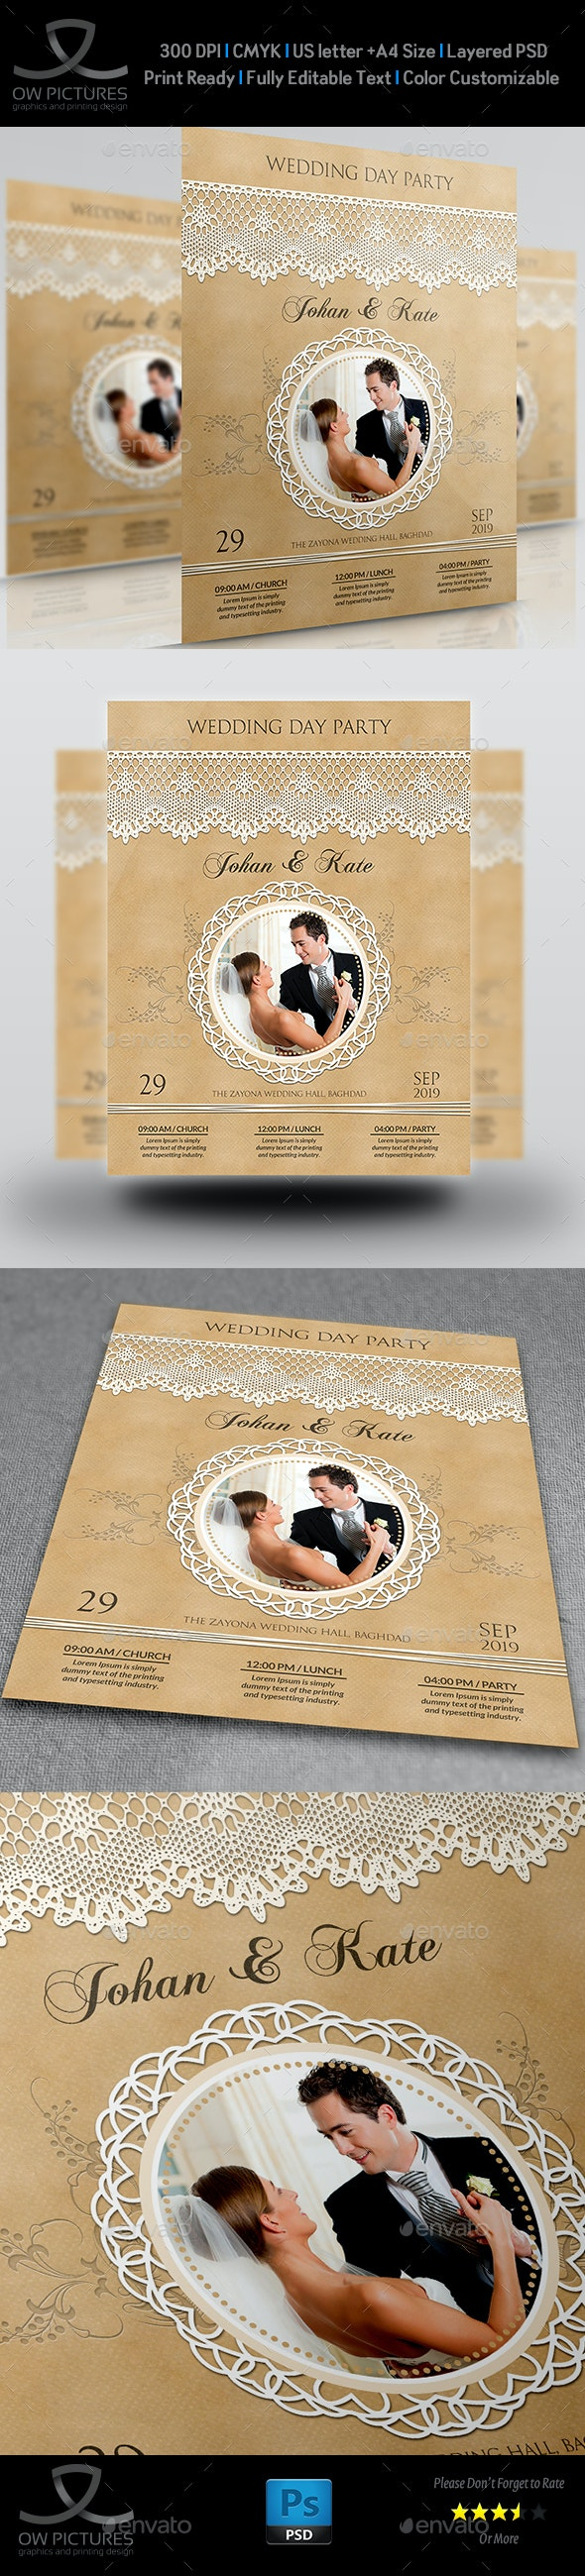 Wedding Party Flyer Template Vol.3 - Events Flyers